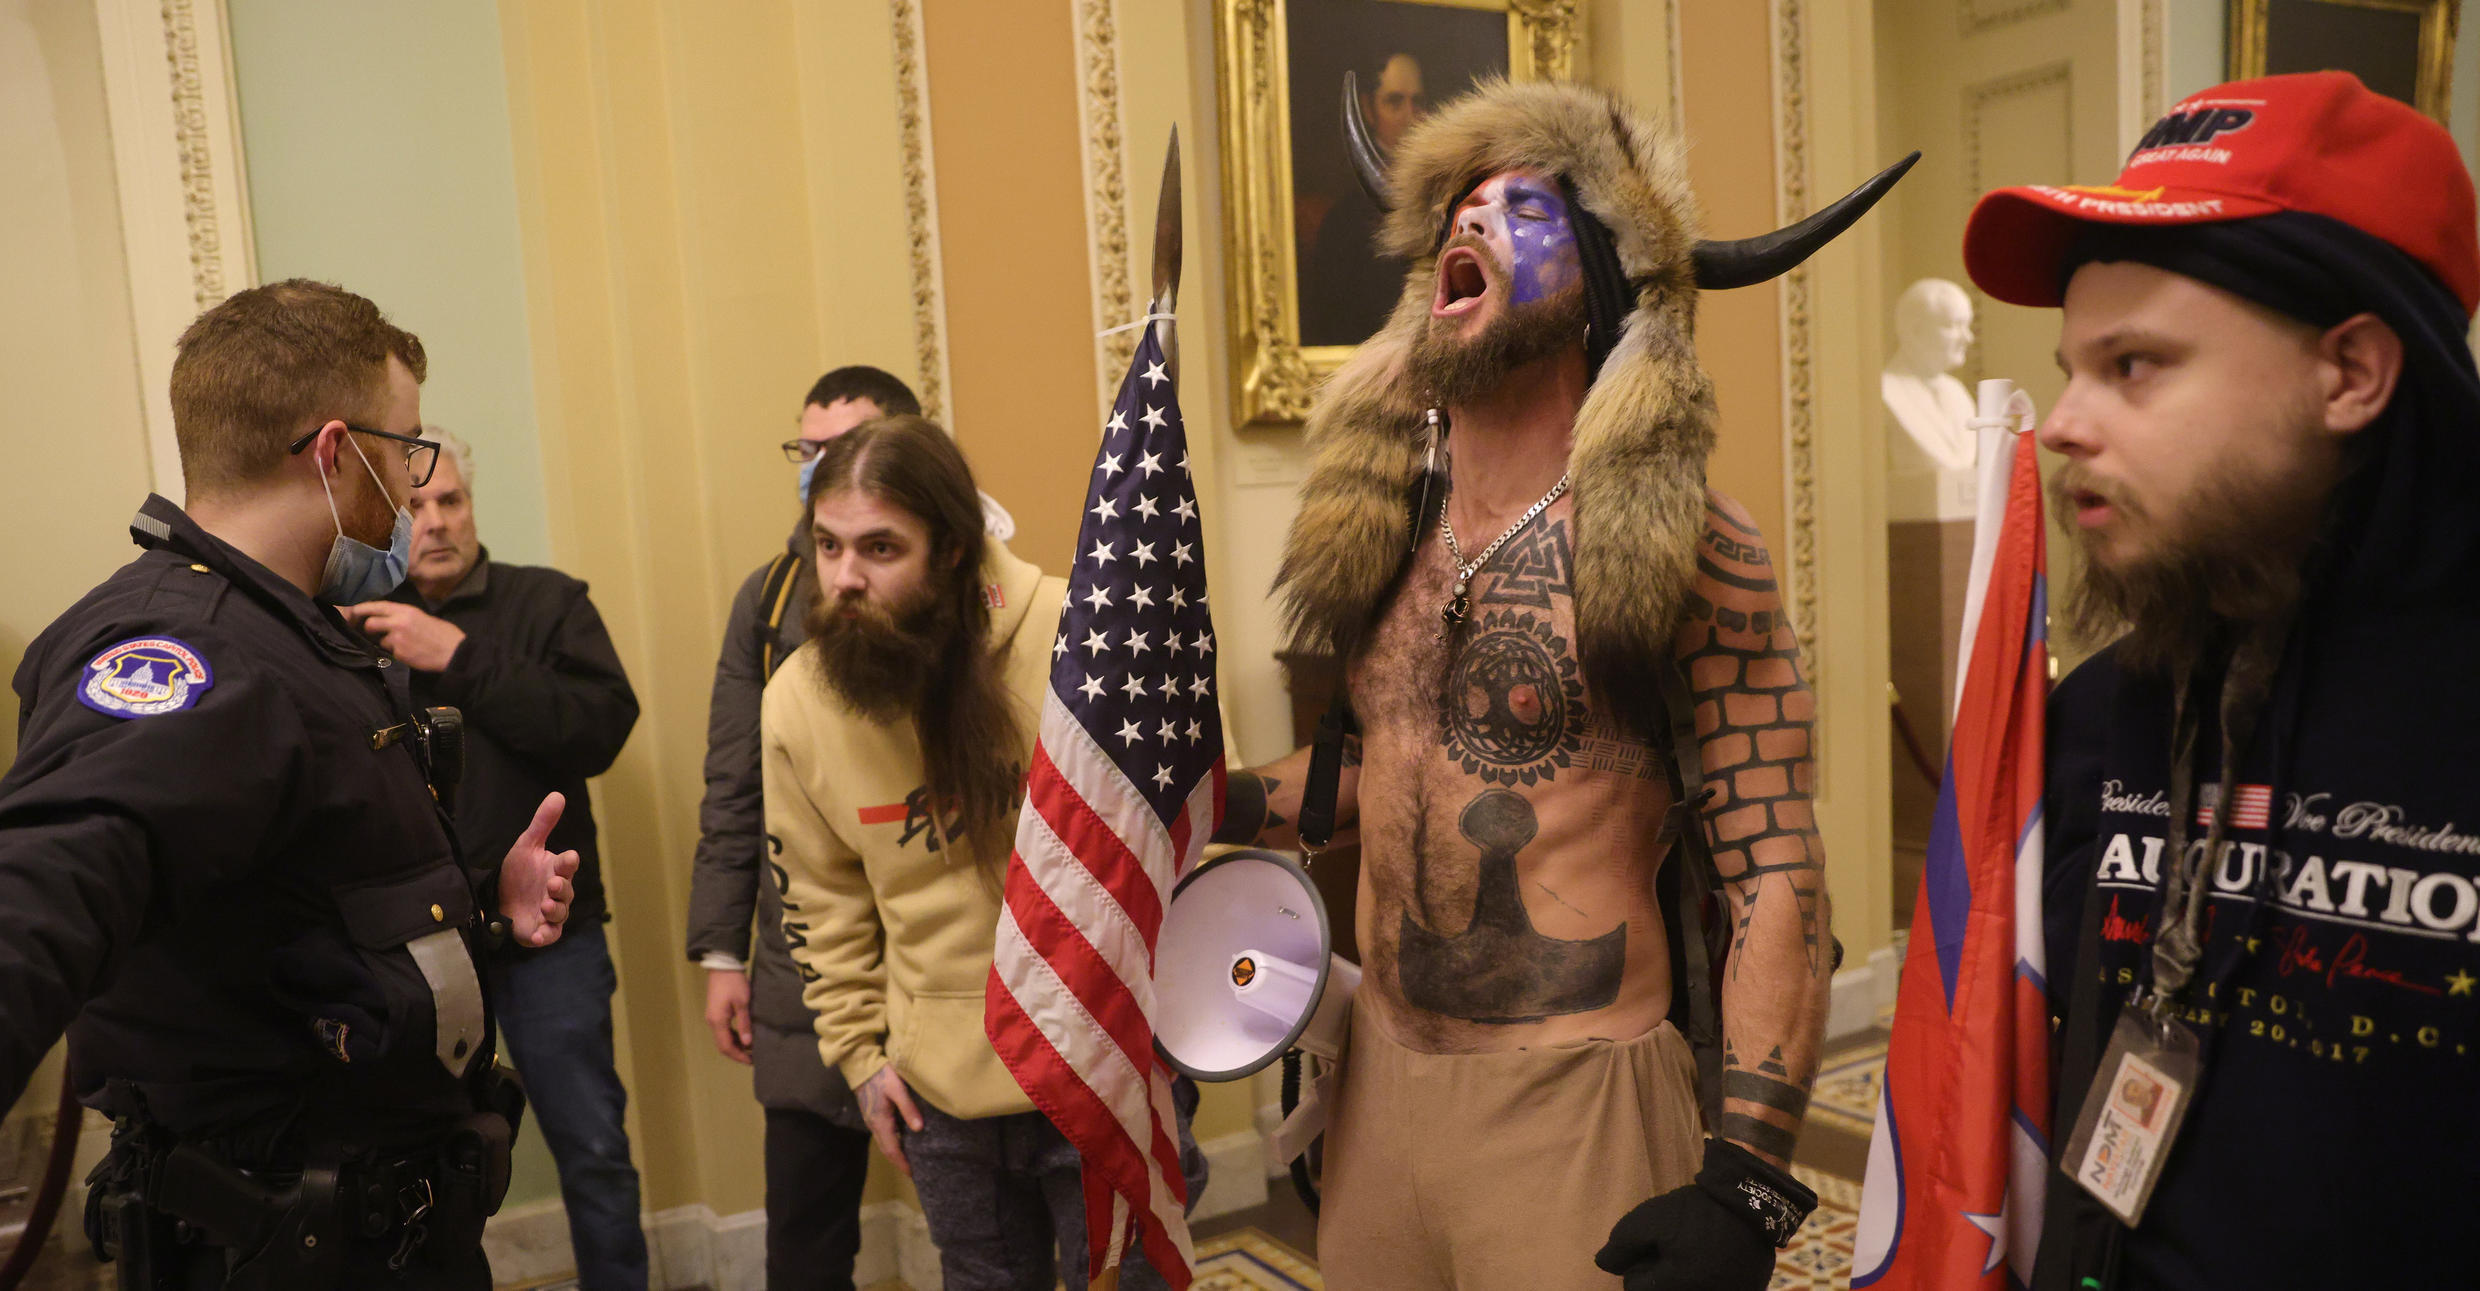 Jake Angeli, second from right, is a prominent supporter of the far-right QAnon conspiracy theory.